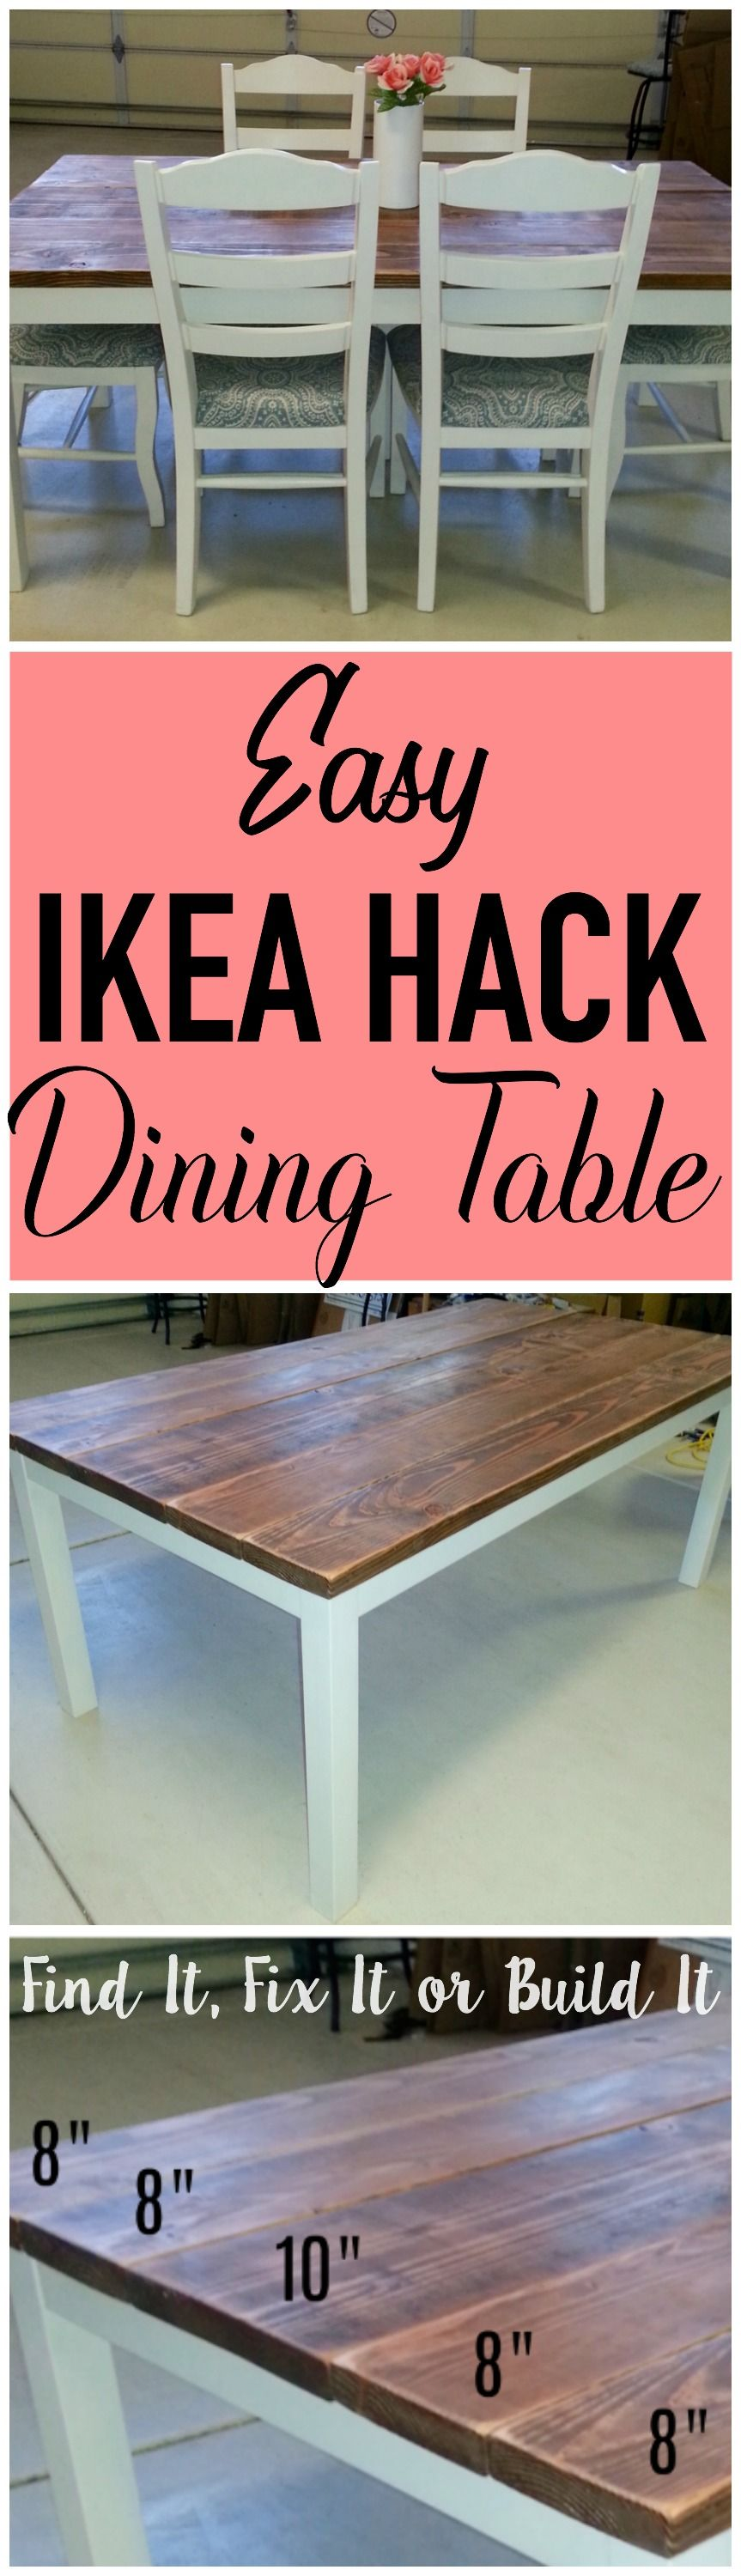 Projects Idea Of Steampunk Dining Table. Transform a basic IKEA dining table into plank style in few  simple steps Tutorial on how to DIY your own BJURSTA hack Turn an old